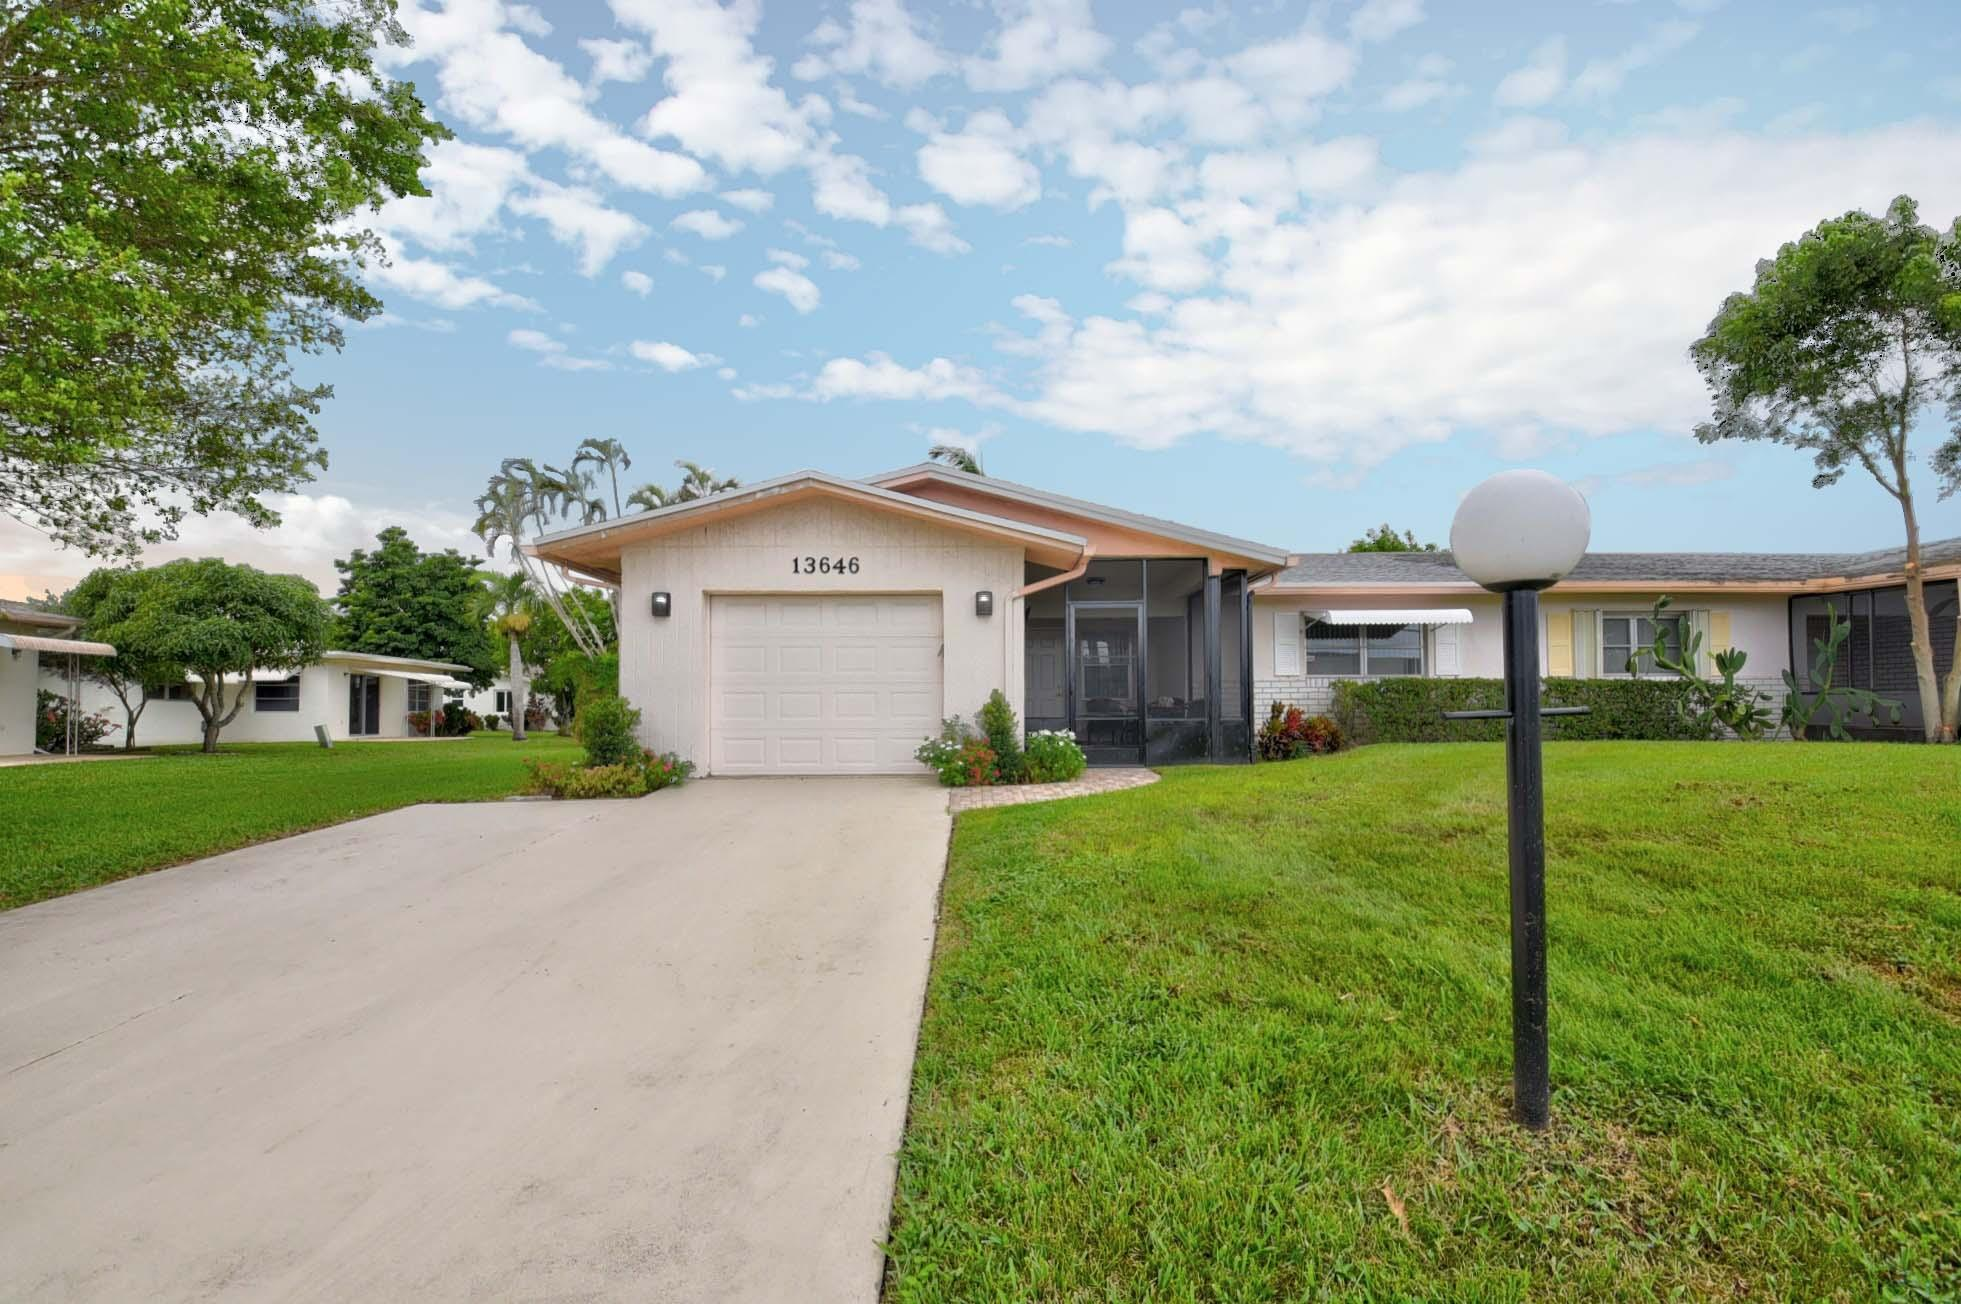 Details for 13646 Whippet Way, Delray Beach, FL 33484